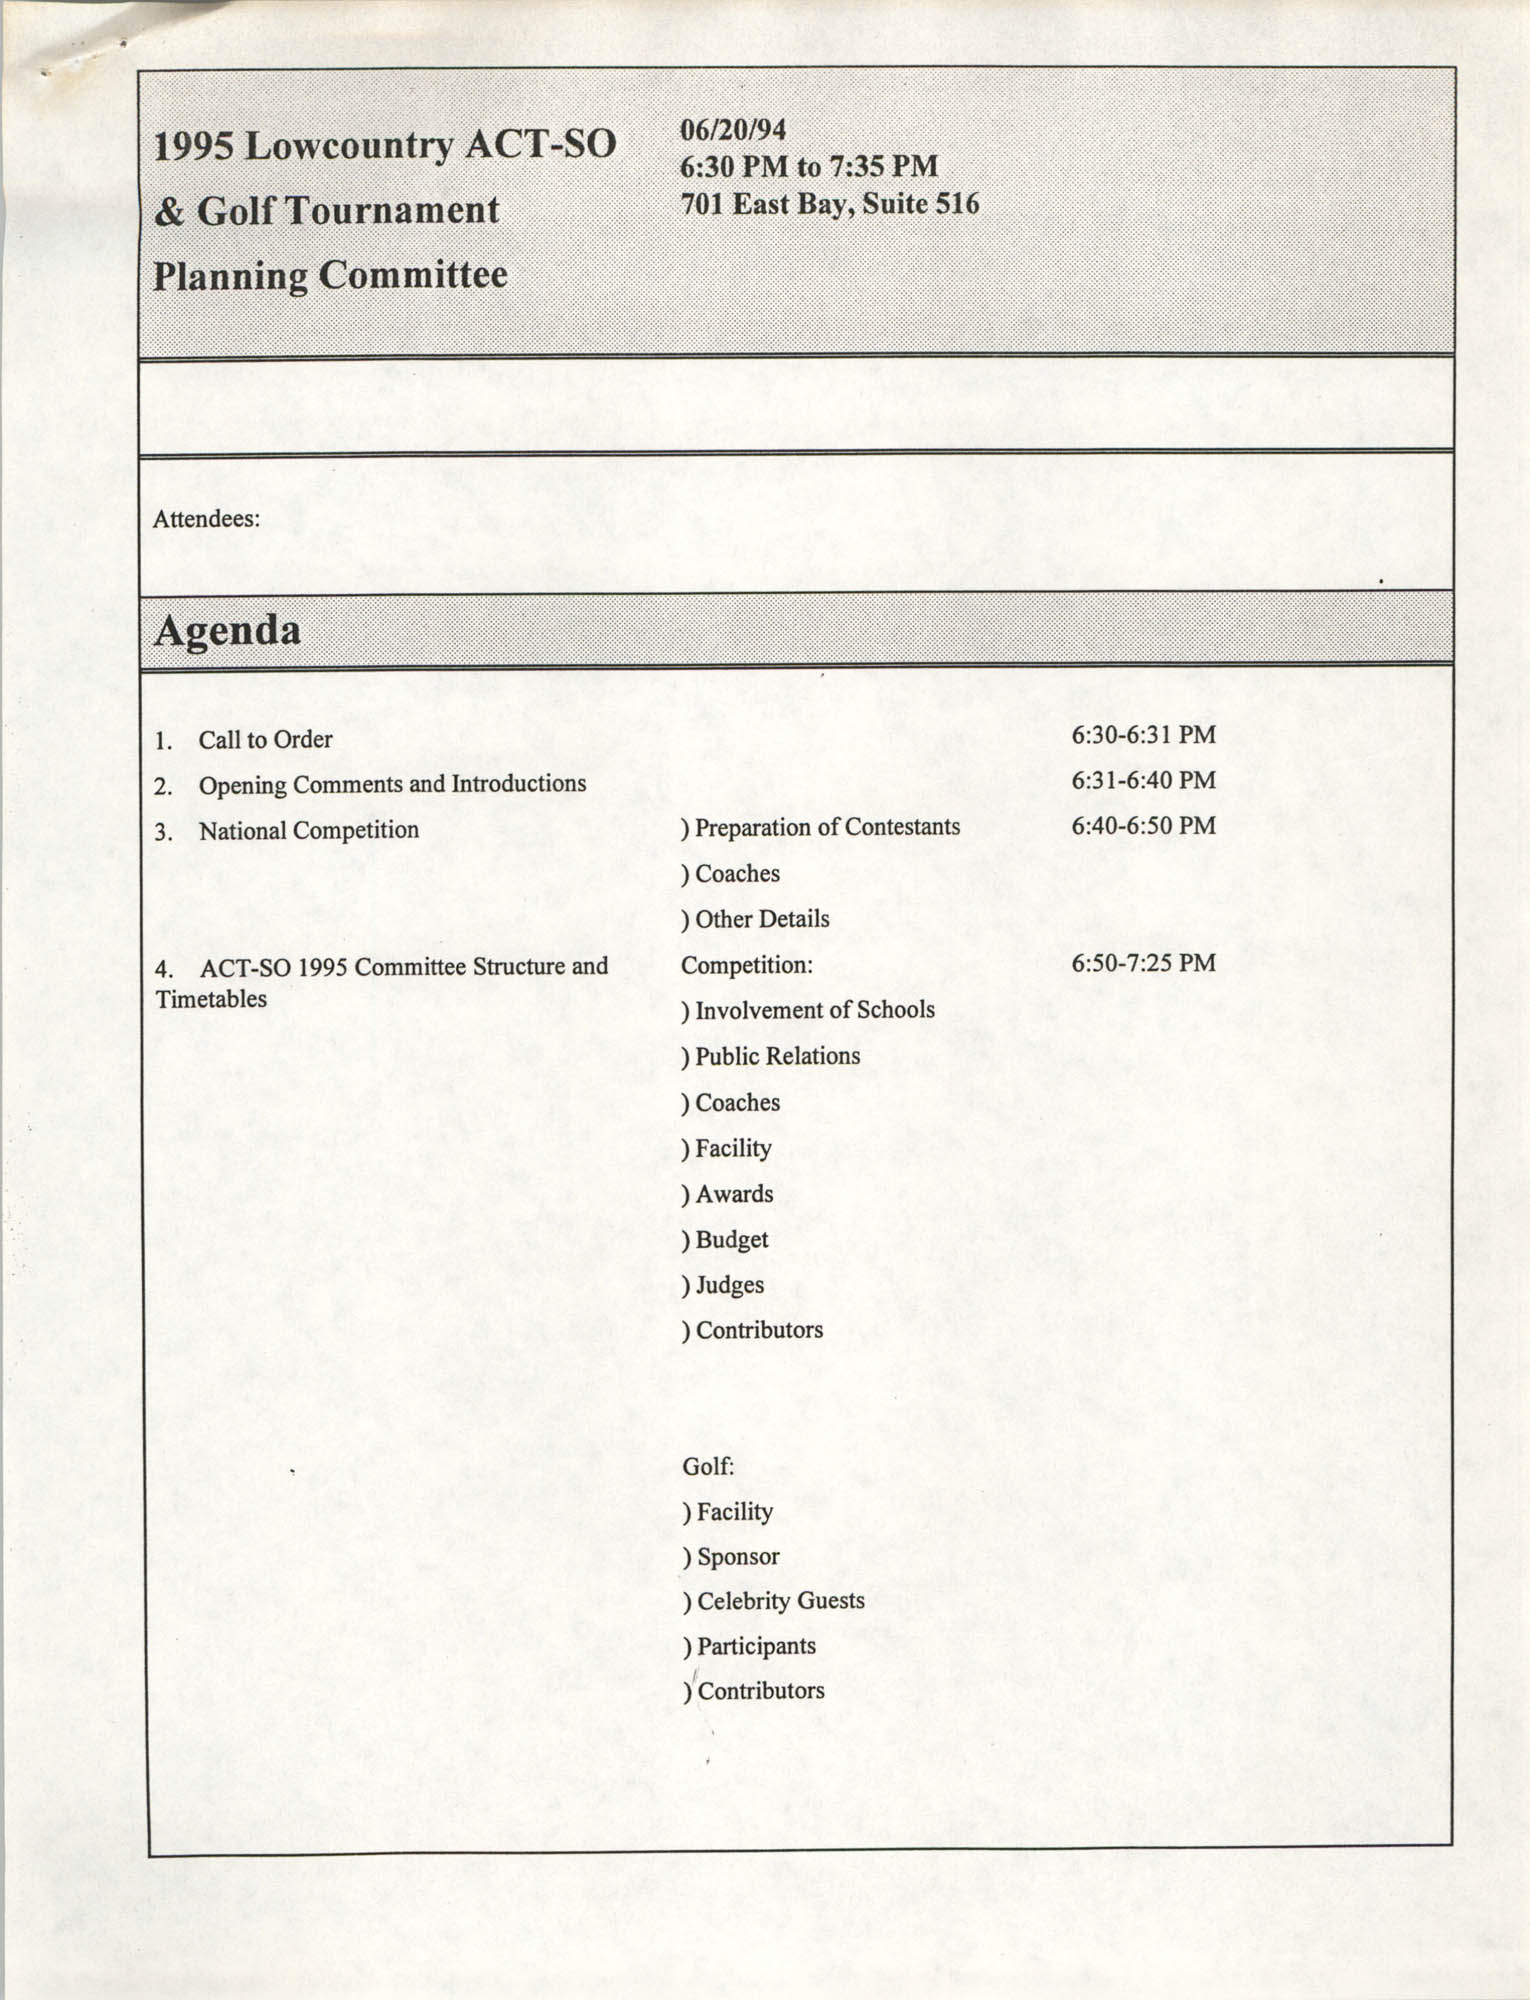 Agenda, 1995 Lowcountry ACT-SO & Golf Tournament Planning Committee